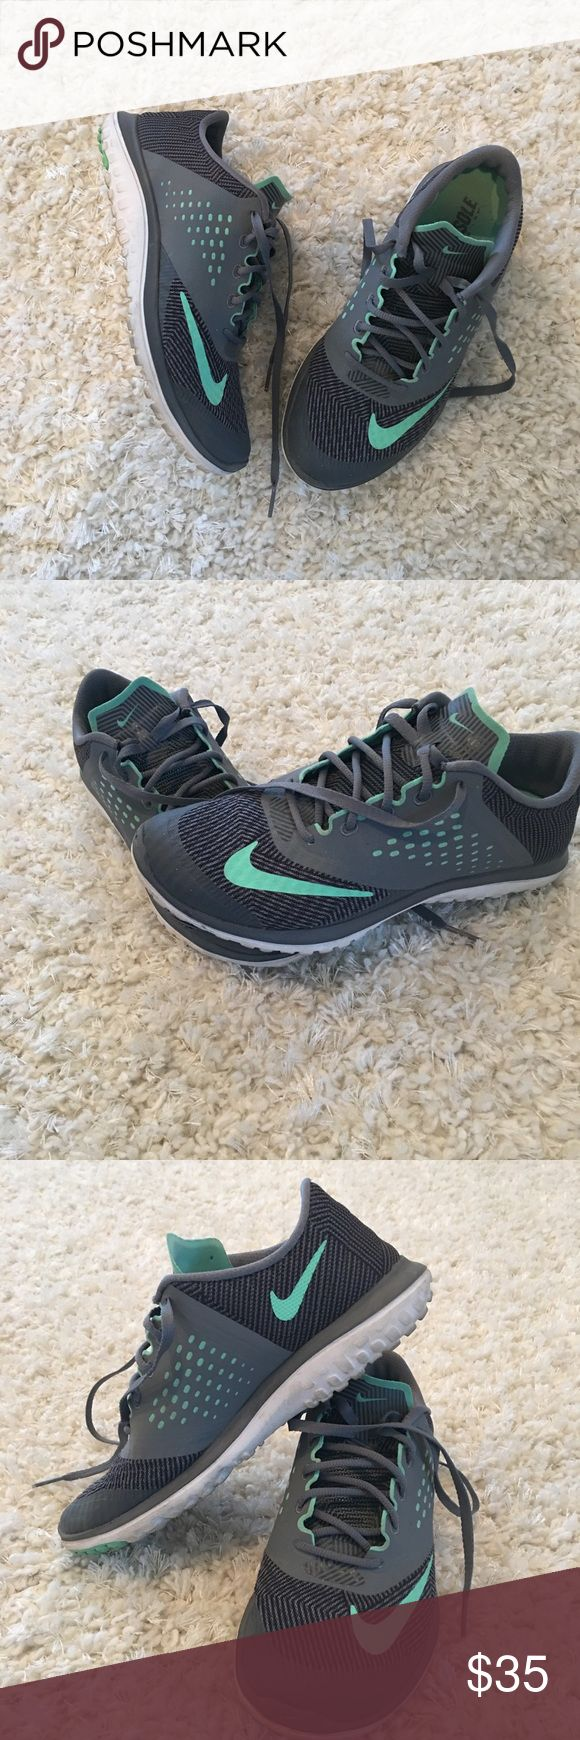 Nike Fitsole Shoes Nike fitsole shoes   Women's size 6.5  These shoes have been worn only indoors, after my foot surgery I need a wide shoes.   Very gently worn, well taken care of.   Pet free smoke free home. Nike Shoes Sneakers